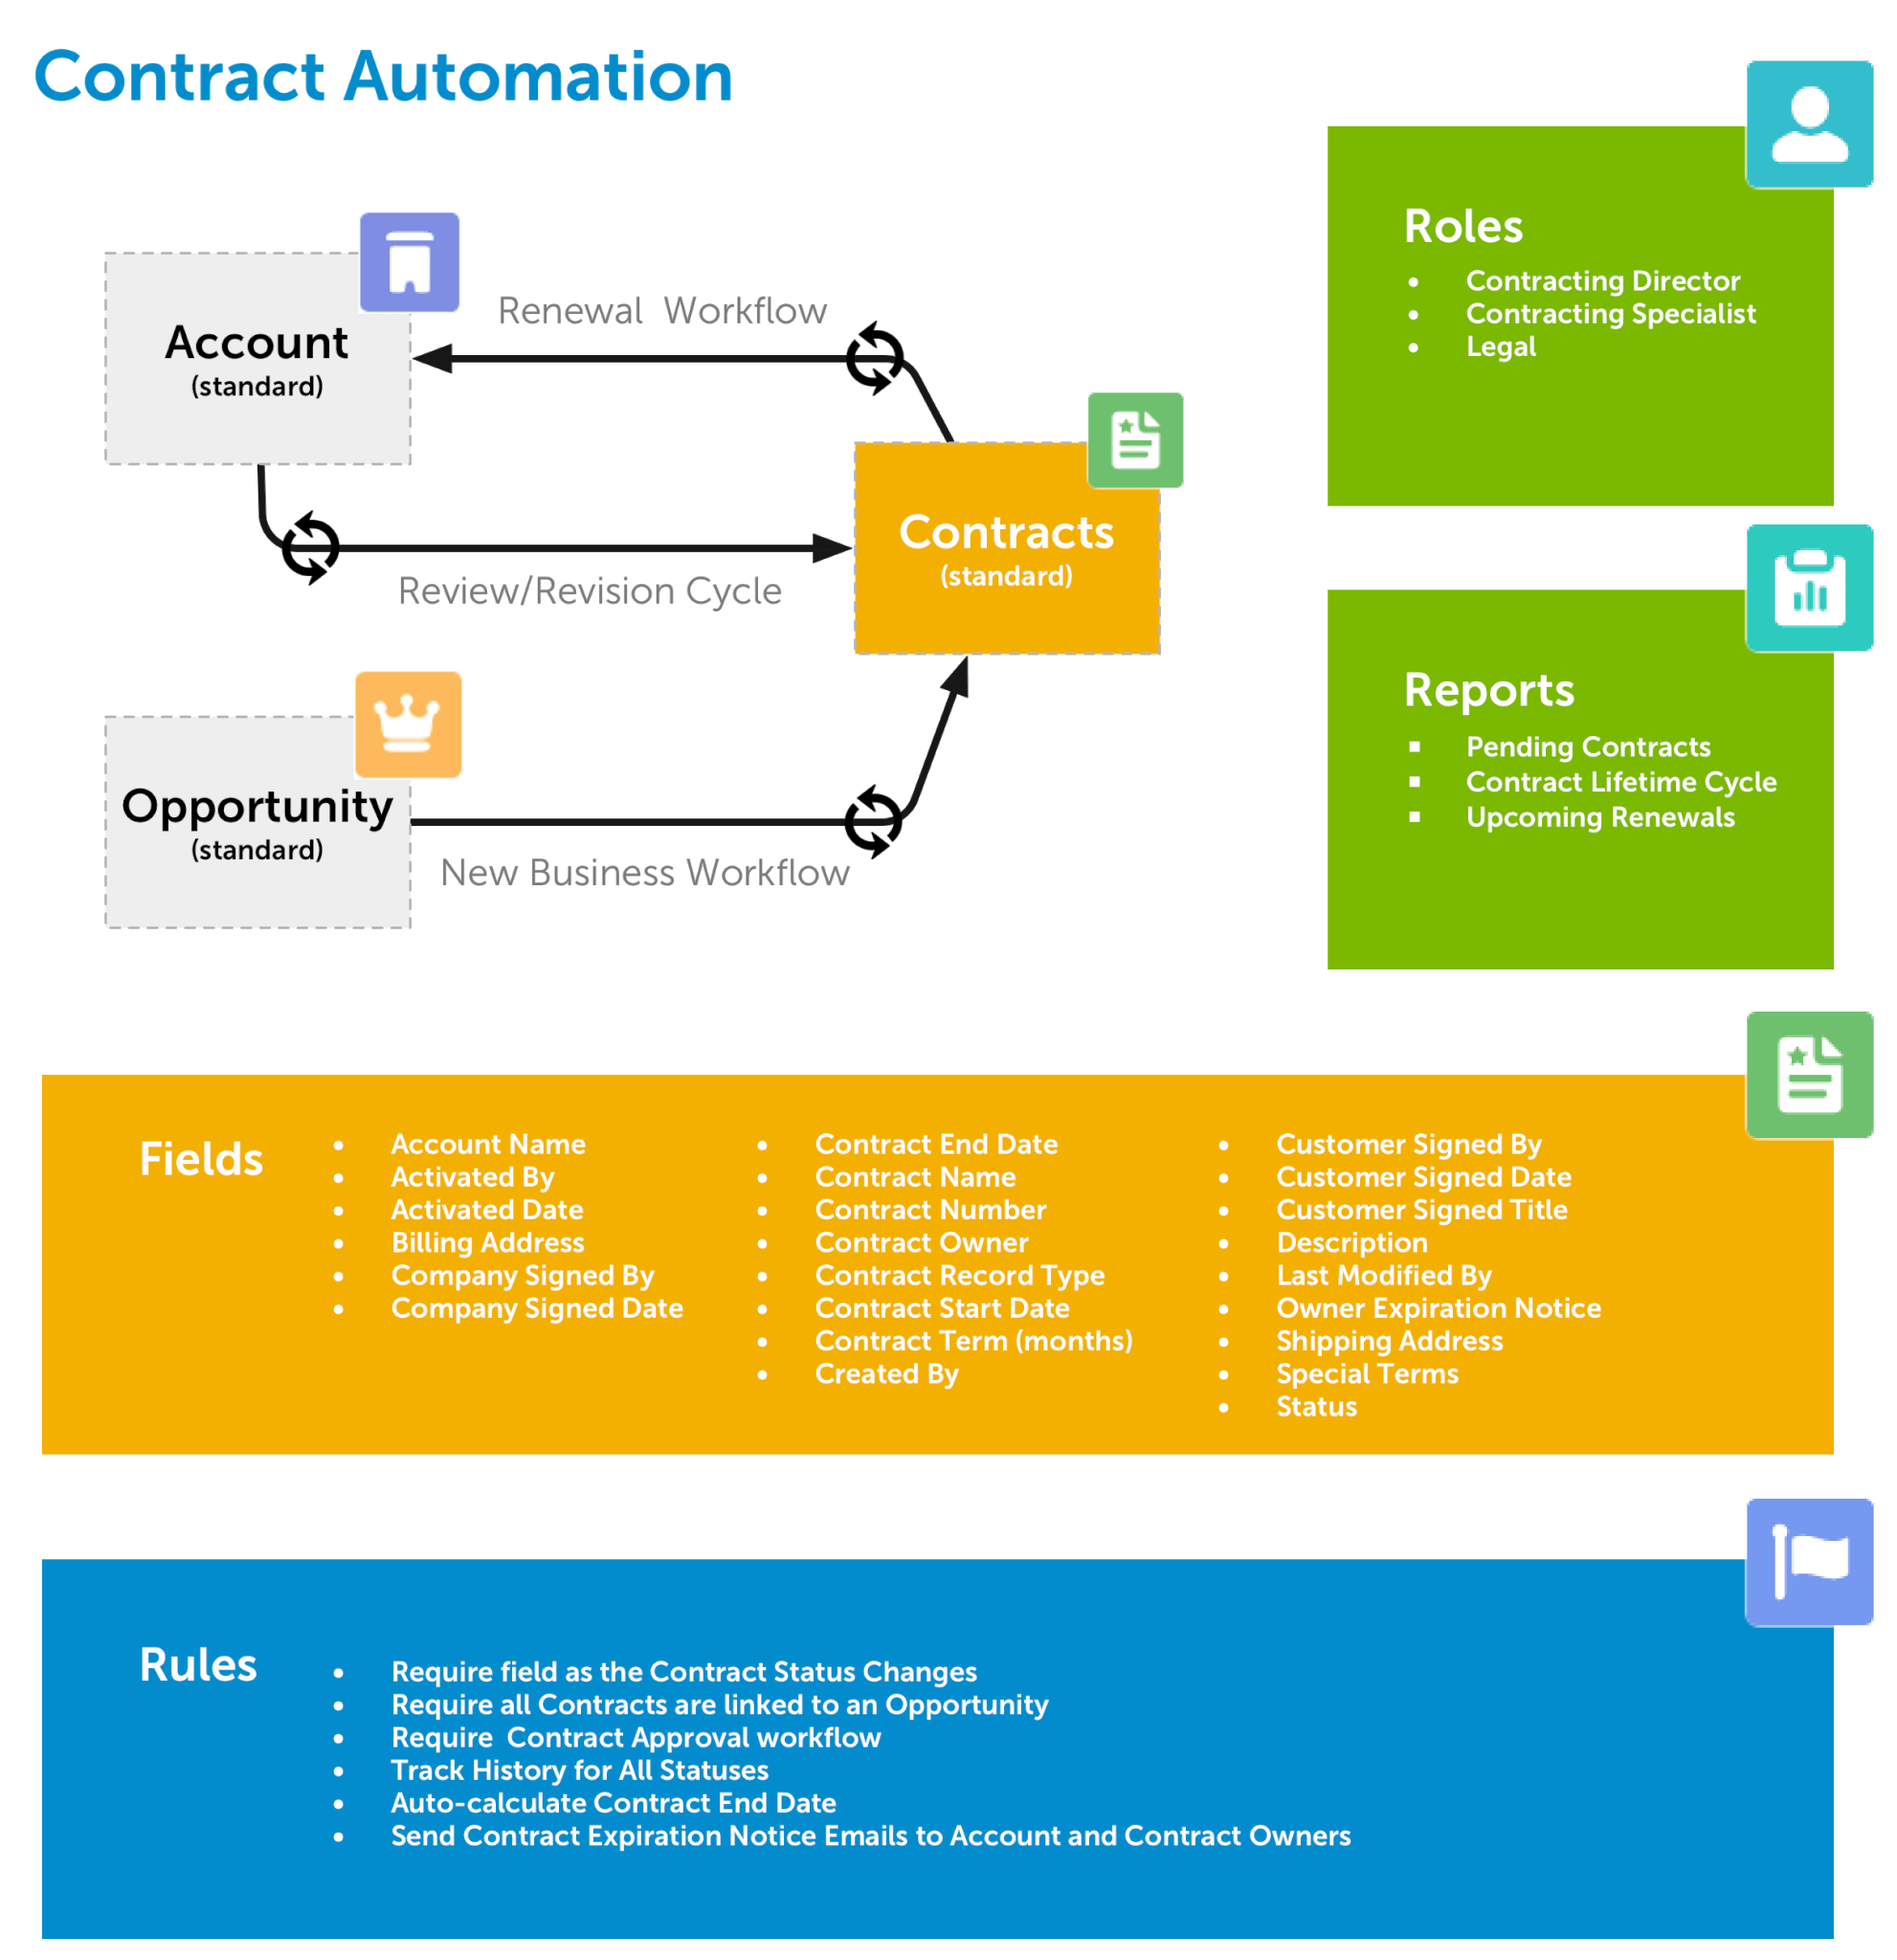 Health Insurance CRM - Group Contract Automation